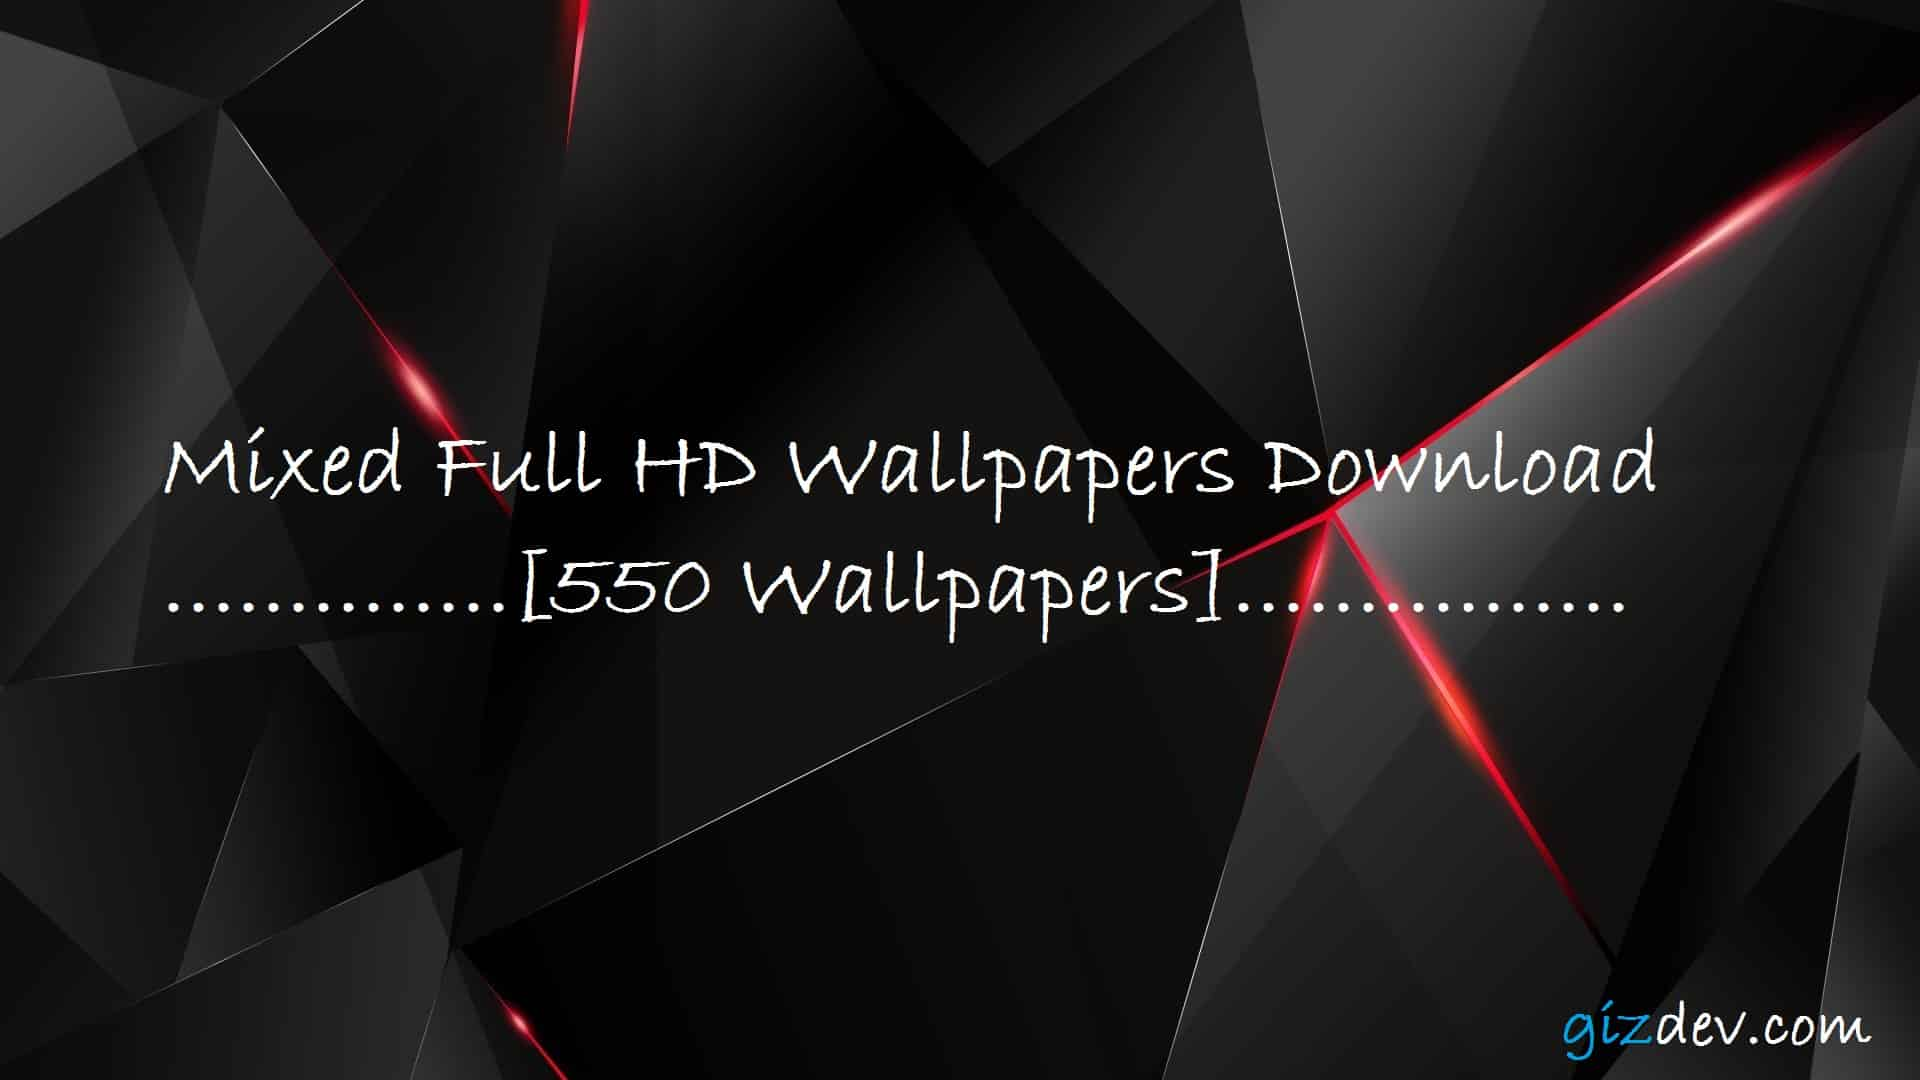 Hd wallpaper red and black - Hd Wallpaper Red And Black 84